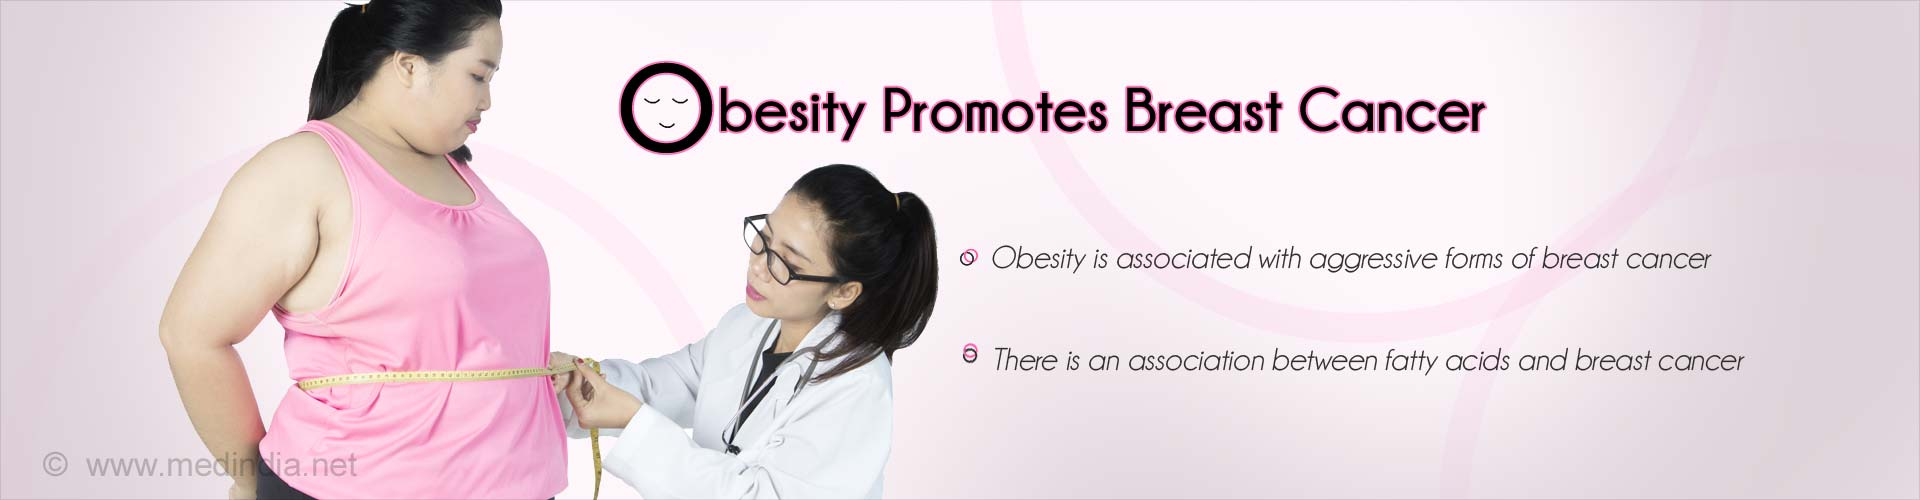 Obesity Promotes Breast Cancer